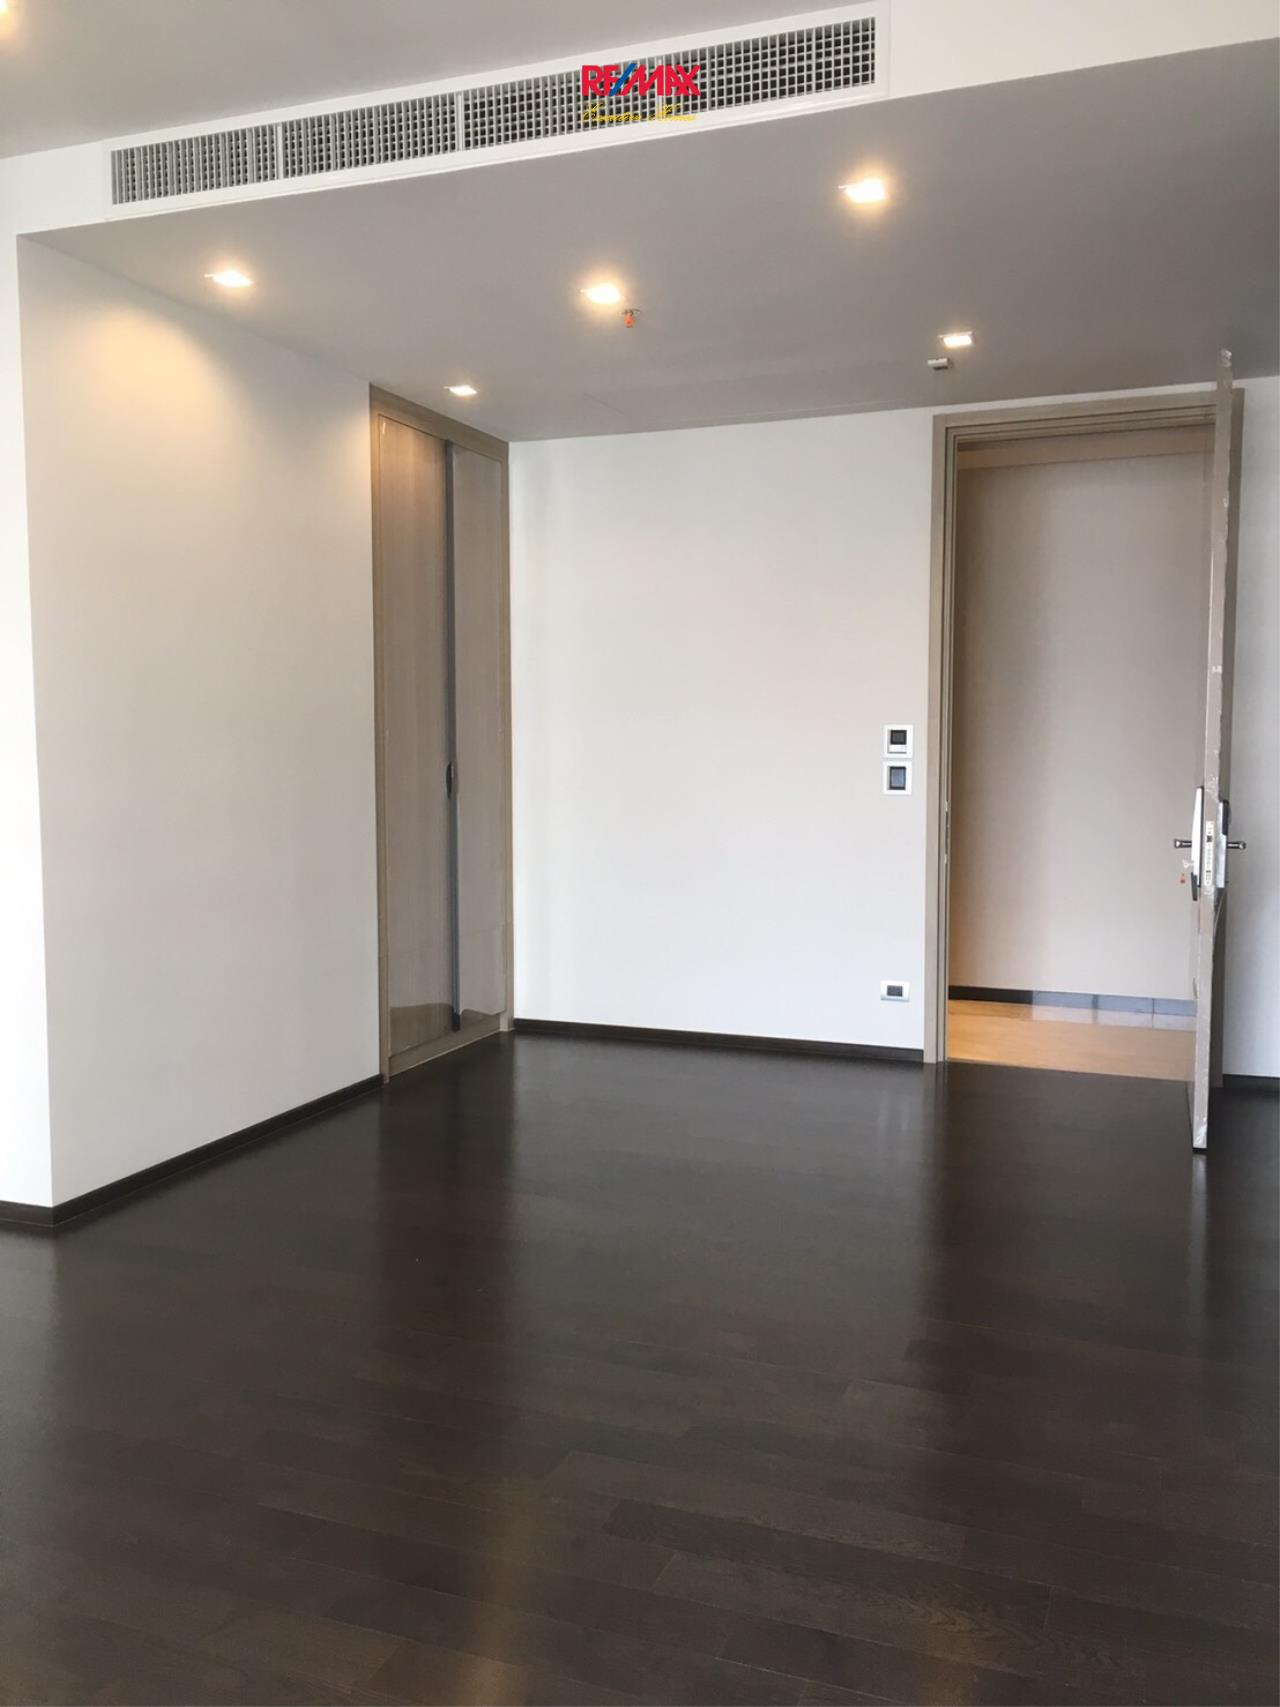 RE/MAX Executive Homes Agency's Spacious 2 Bedroom for Sale XXXIX by Sansiri 2